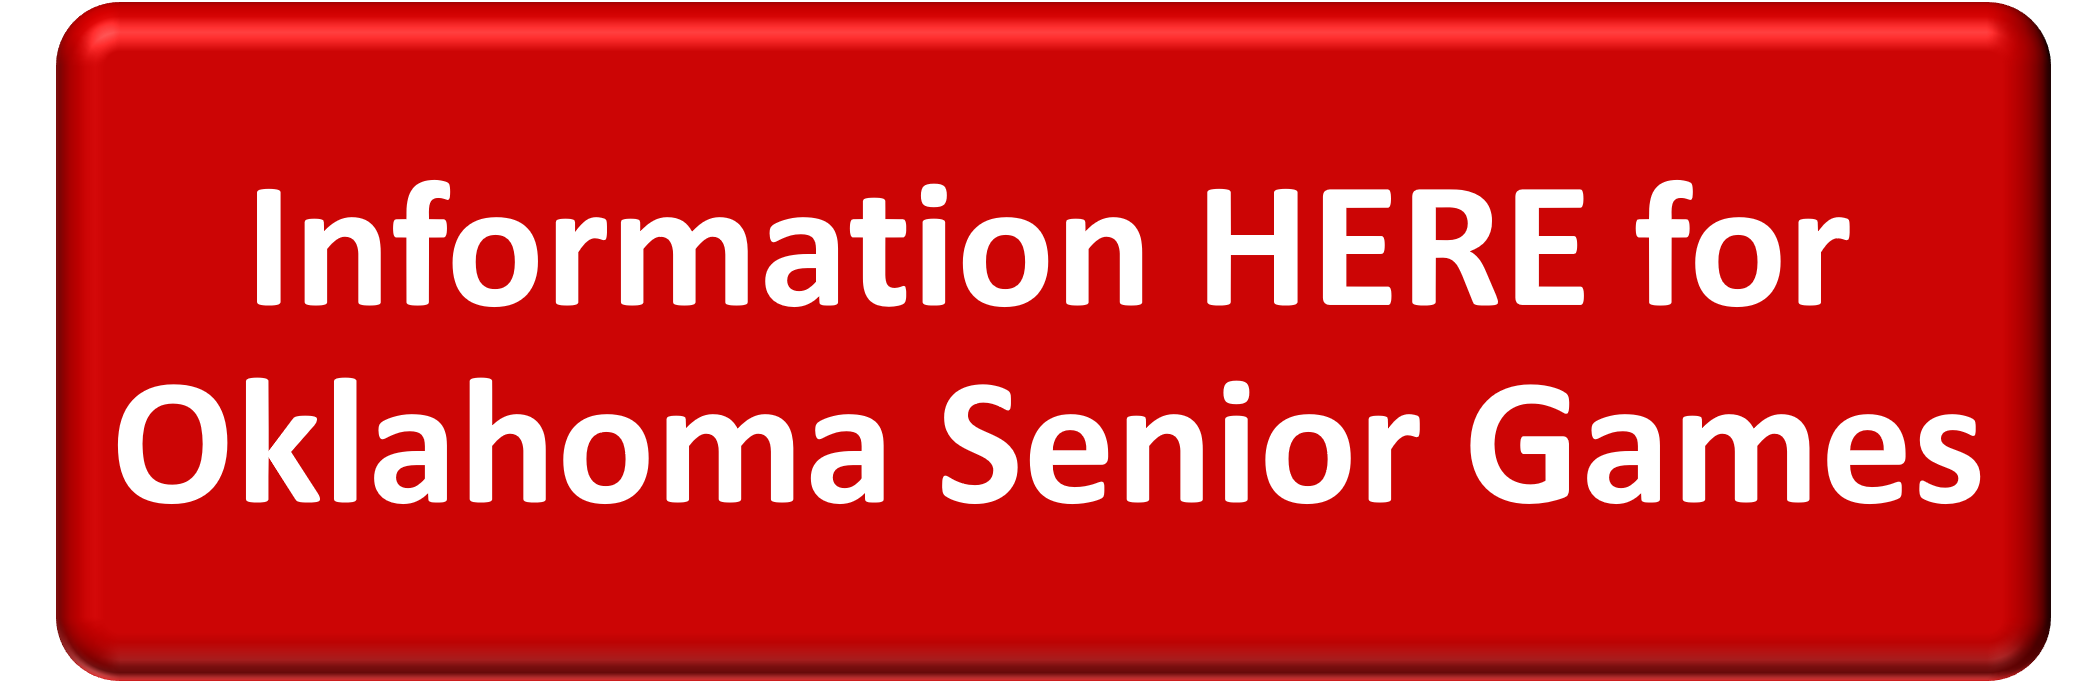 Information here for Oklahoma Senior Games